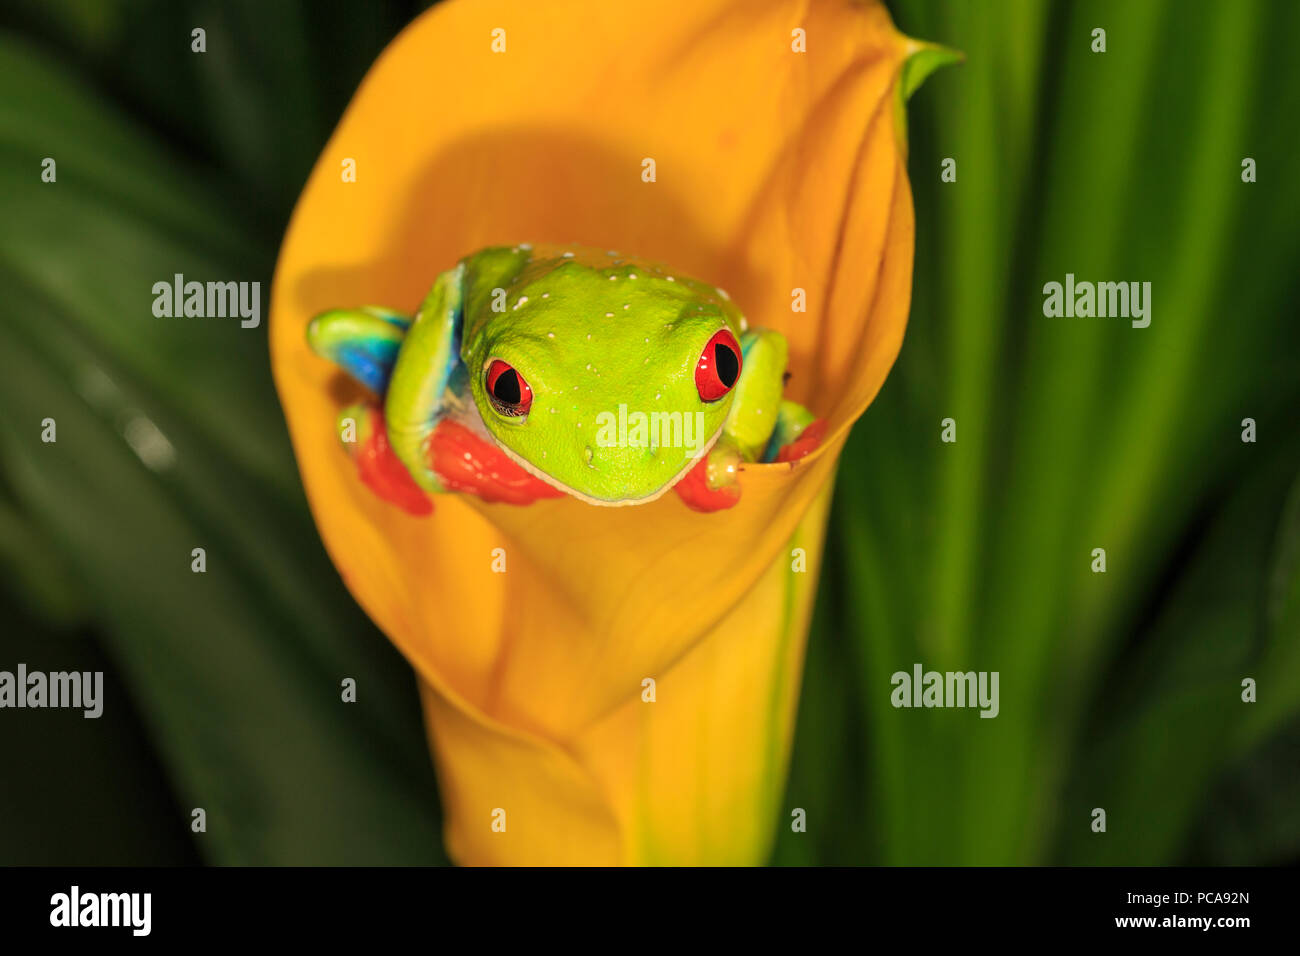 Red-eyed tree frog (Agalychnis callidryas) on orange calla lily Stock Photo